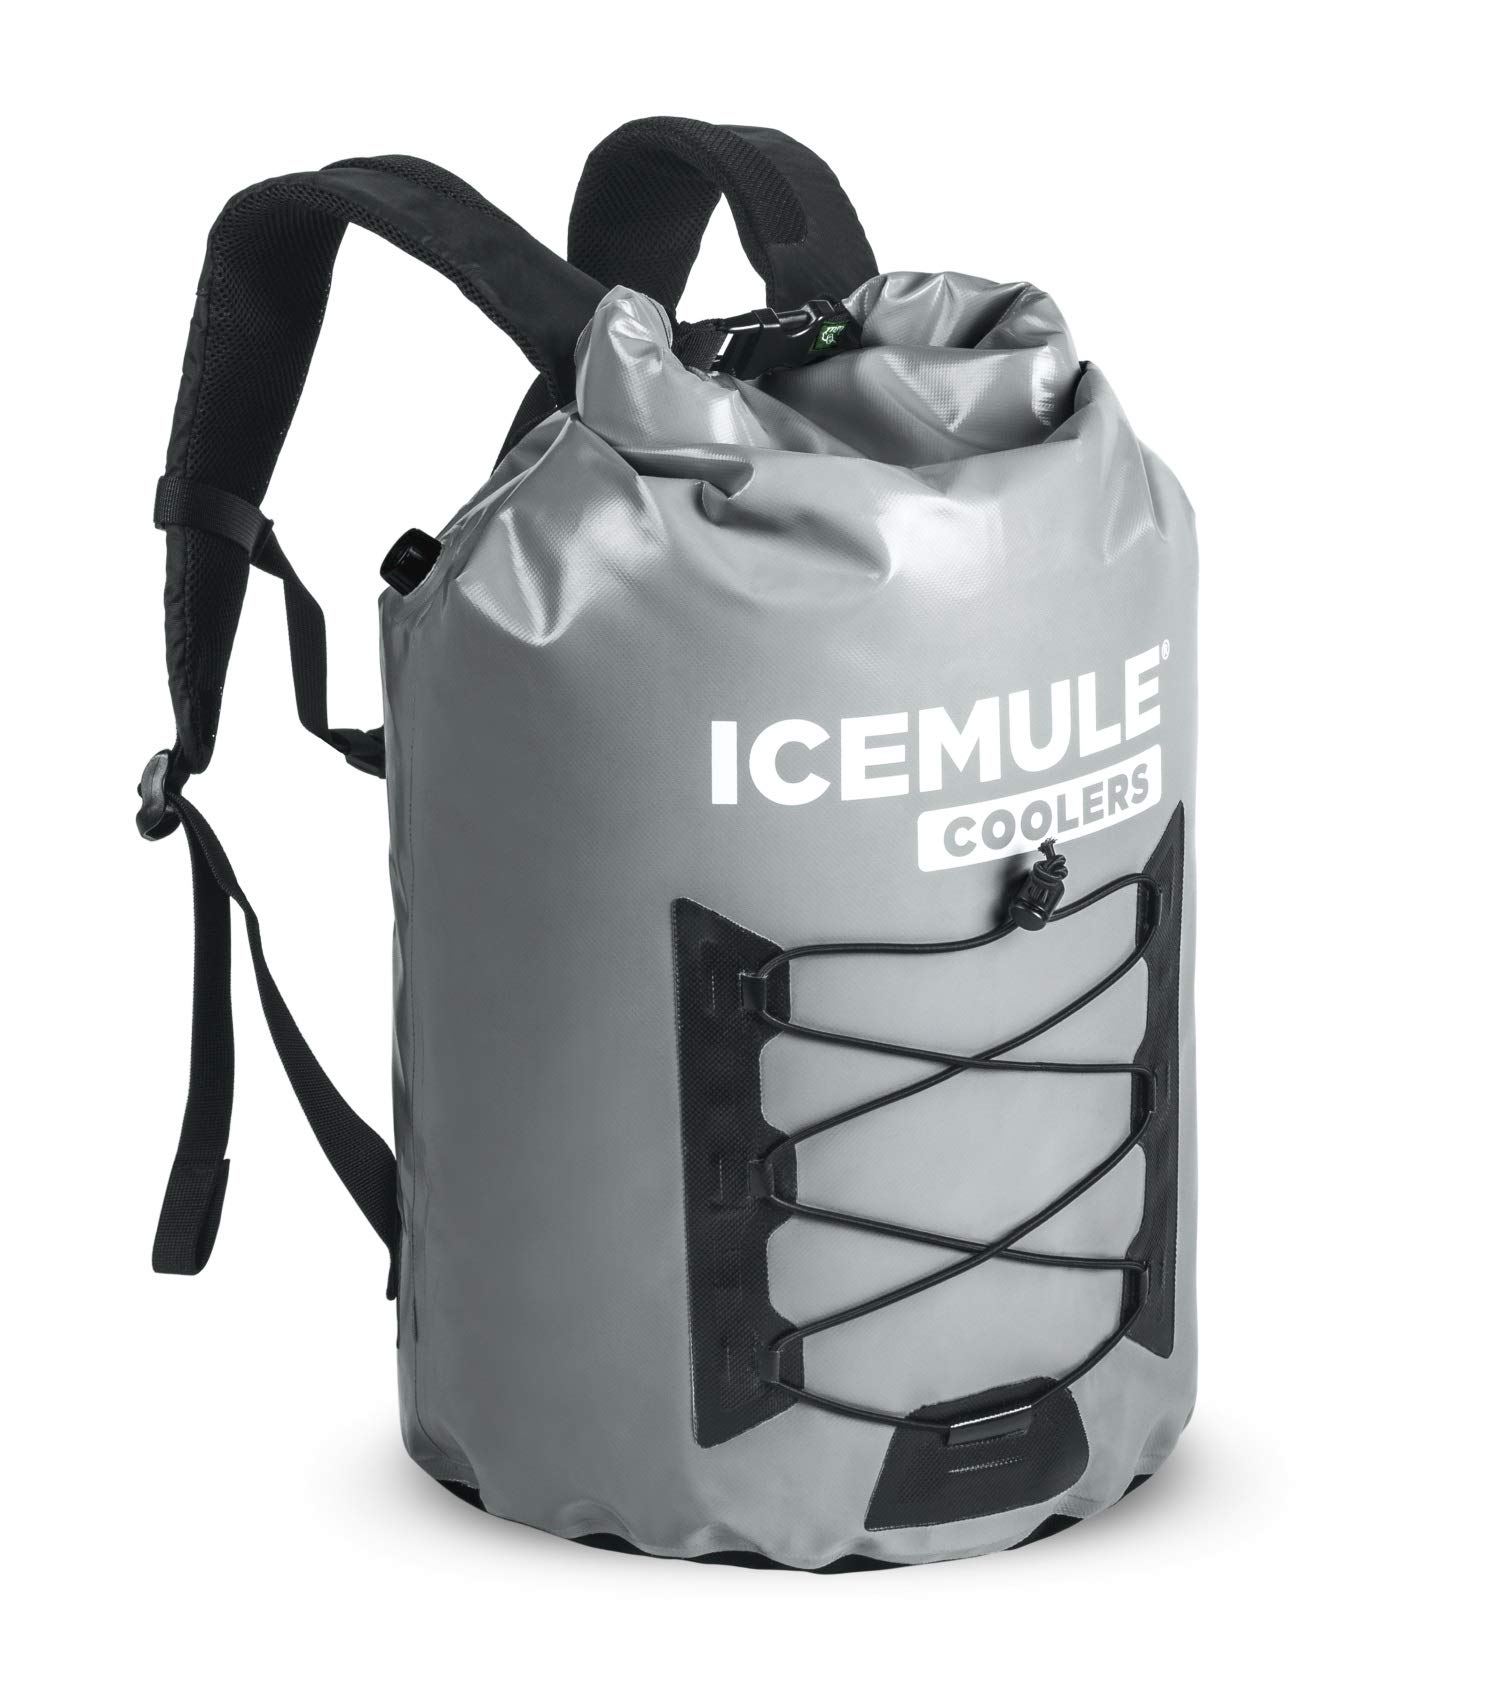 ICEMULE Pro Insulated Backpack Cooler Bag - Hands-free, Highly-Portable, Collapsible, Waterproof and Soft-Sided Cooler Backpack for Hiking, the Beach, Picnics, Camping, Fishing - 23 Liters, 20 Can by IceMule